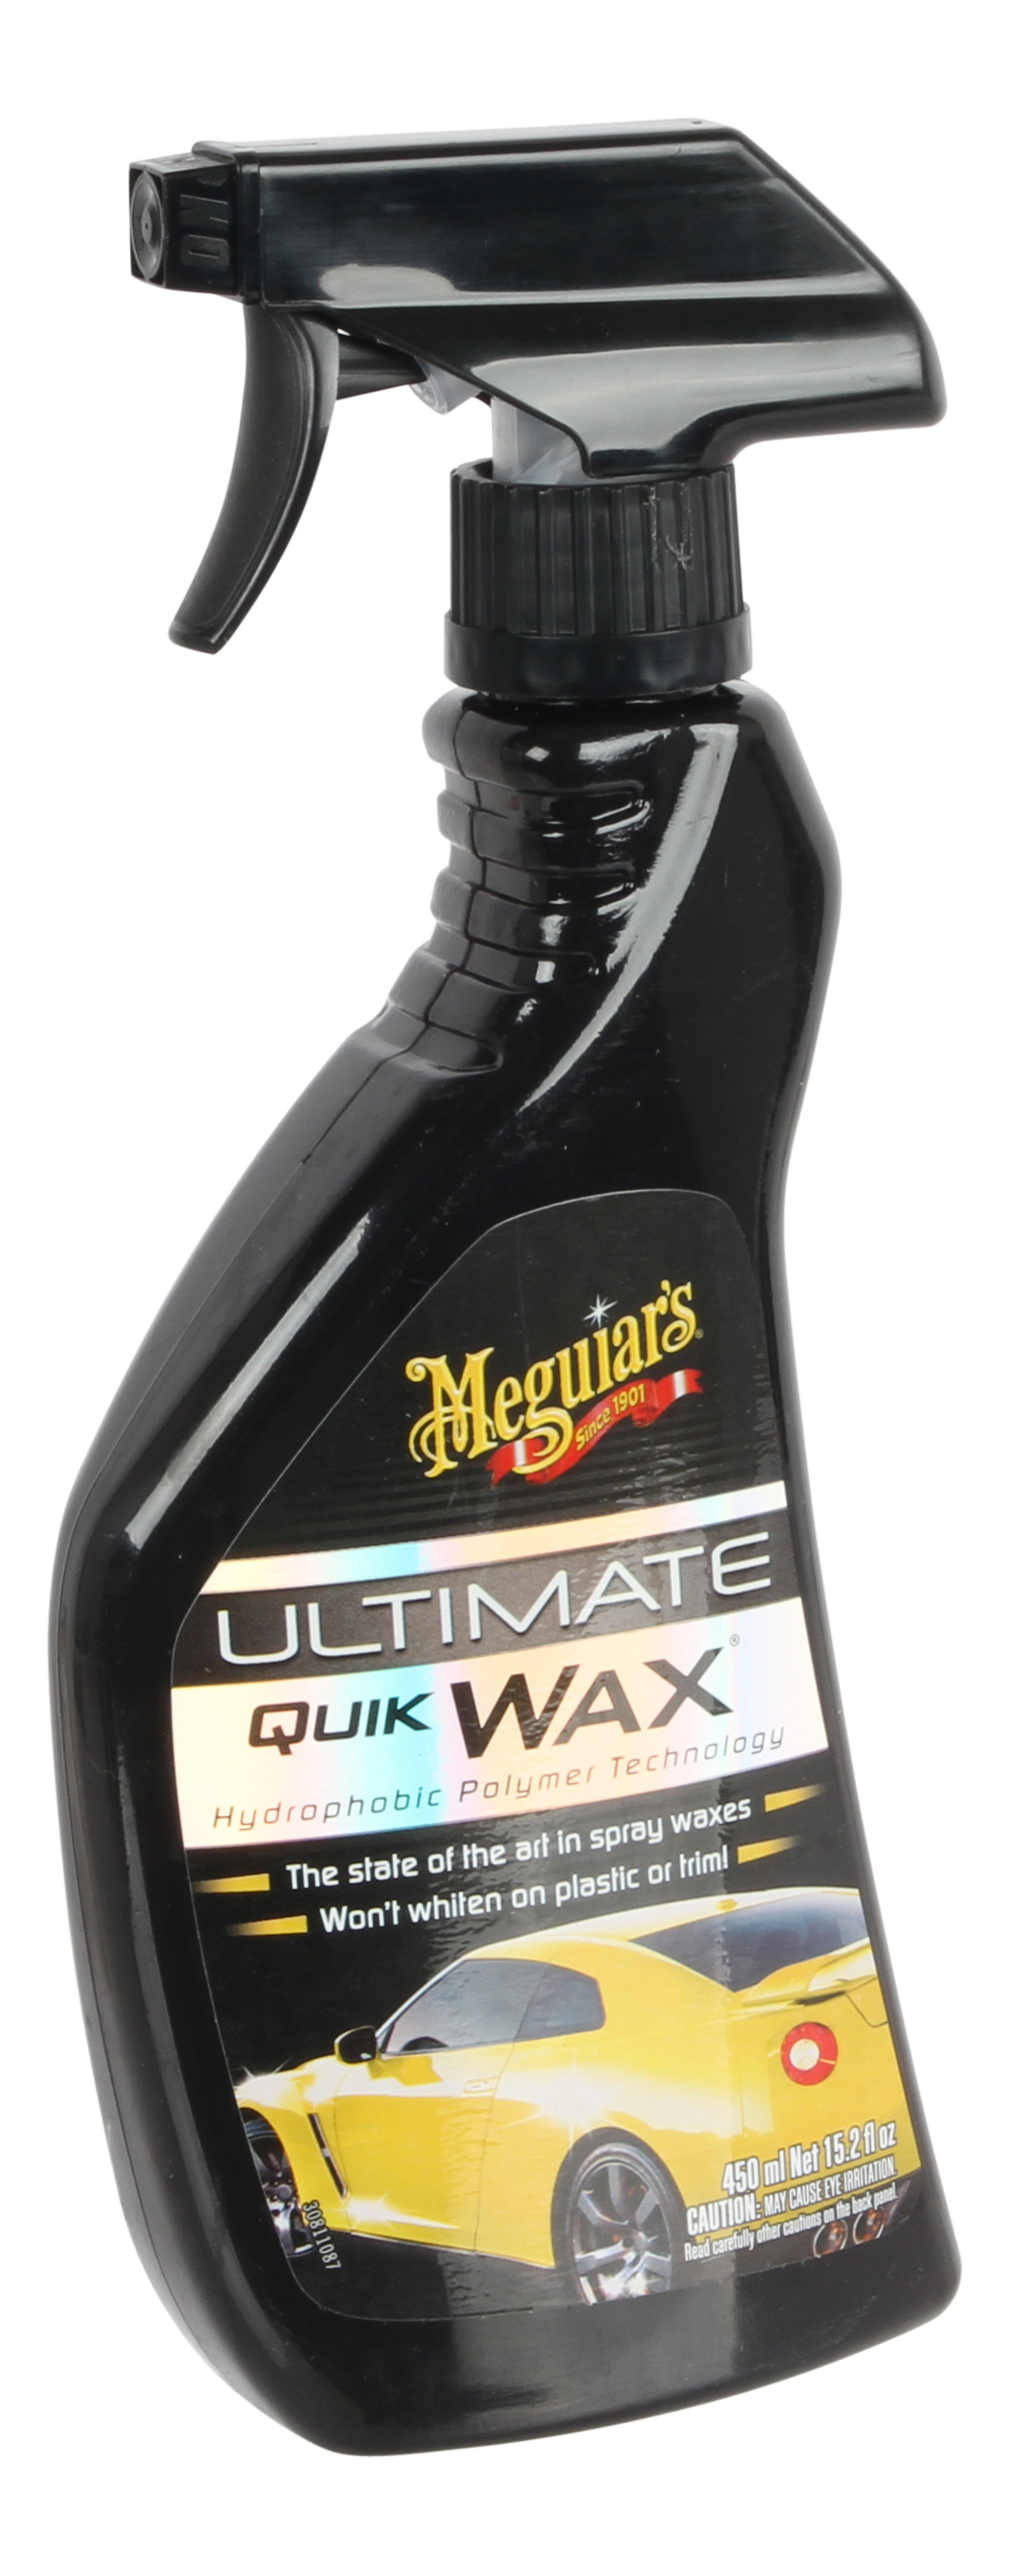 meguiars ultimate quik wax spray g17516 ebay. Black Bedroom Furniture Sets. Home Design Ideas